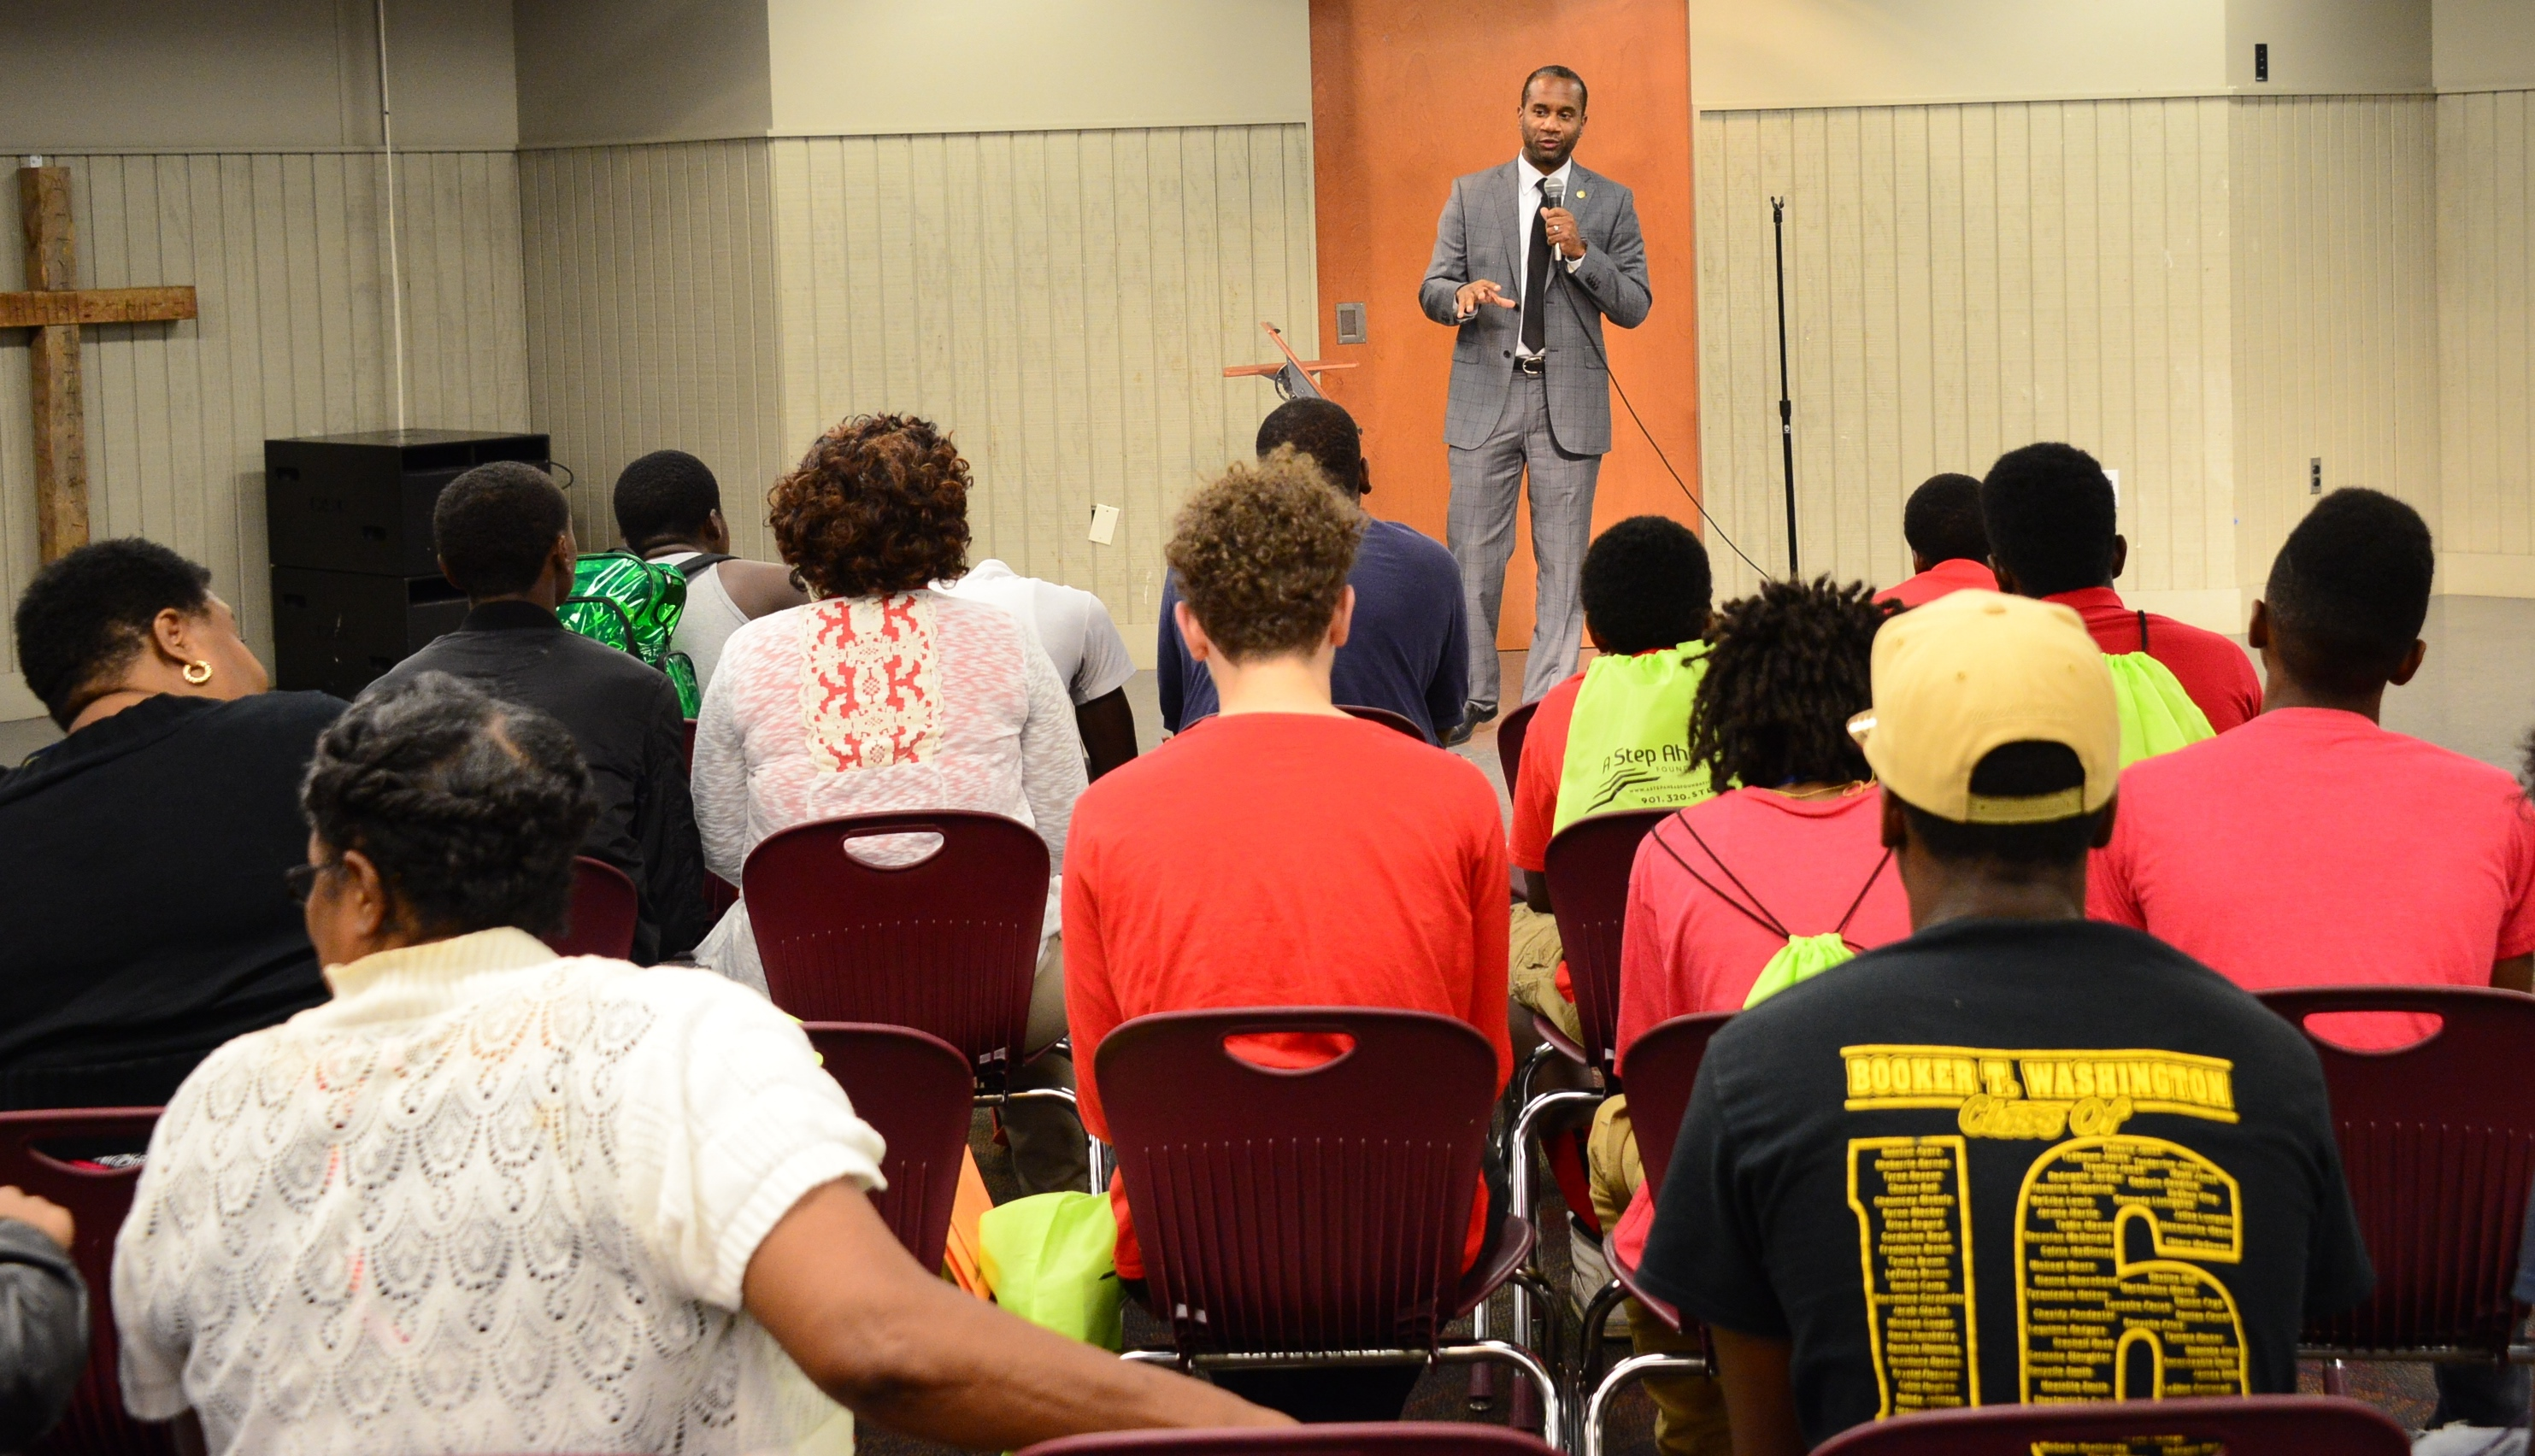 U.S. Attorney Stanton delivers keynote speech at DCS' Career Fair.